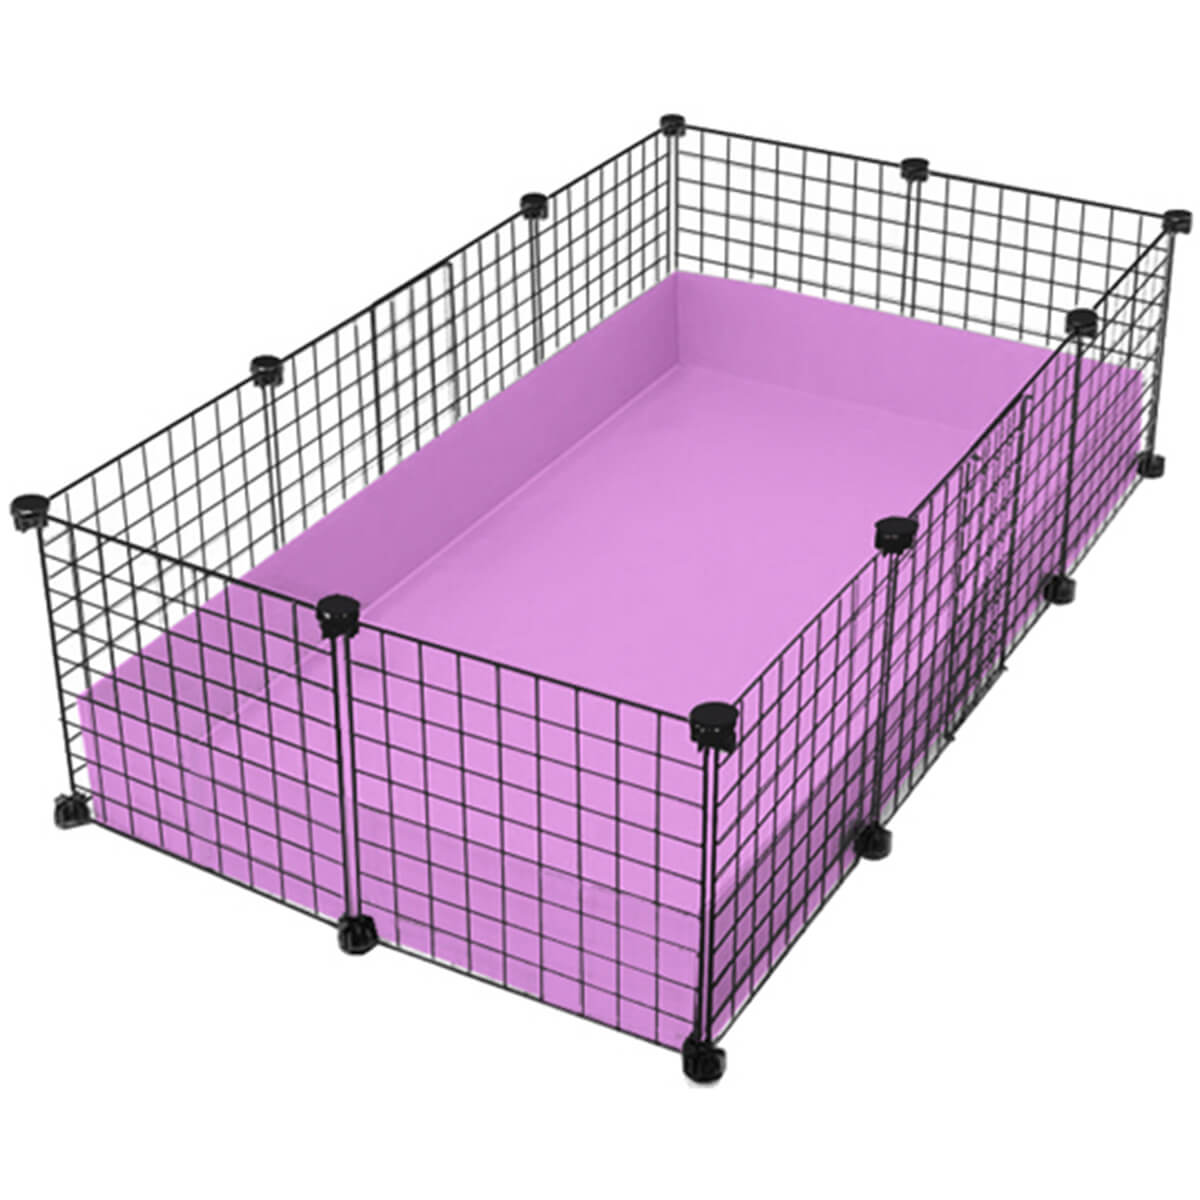 Excellent Medium (2x3.5 Grids) Cage - Standard Cages - Cagetopia YN43